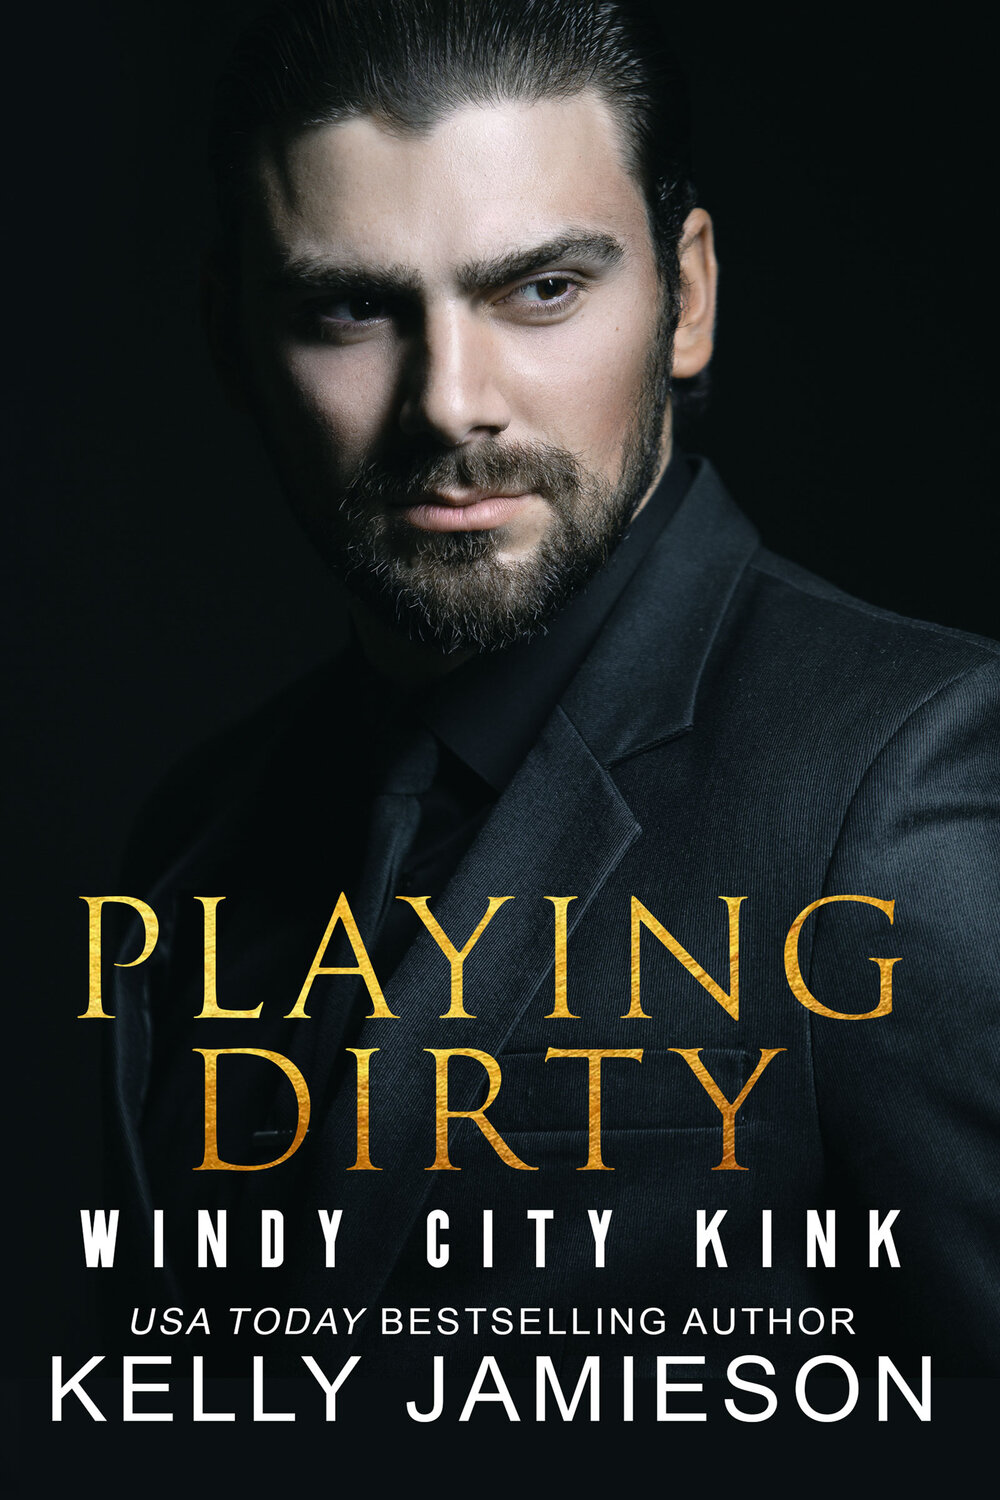 Kelly Jamieson Playing Dirty Windy City Kink 3.jpg